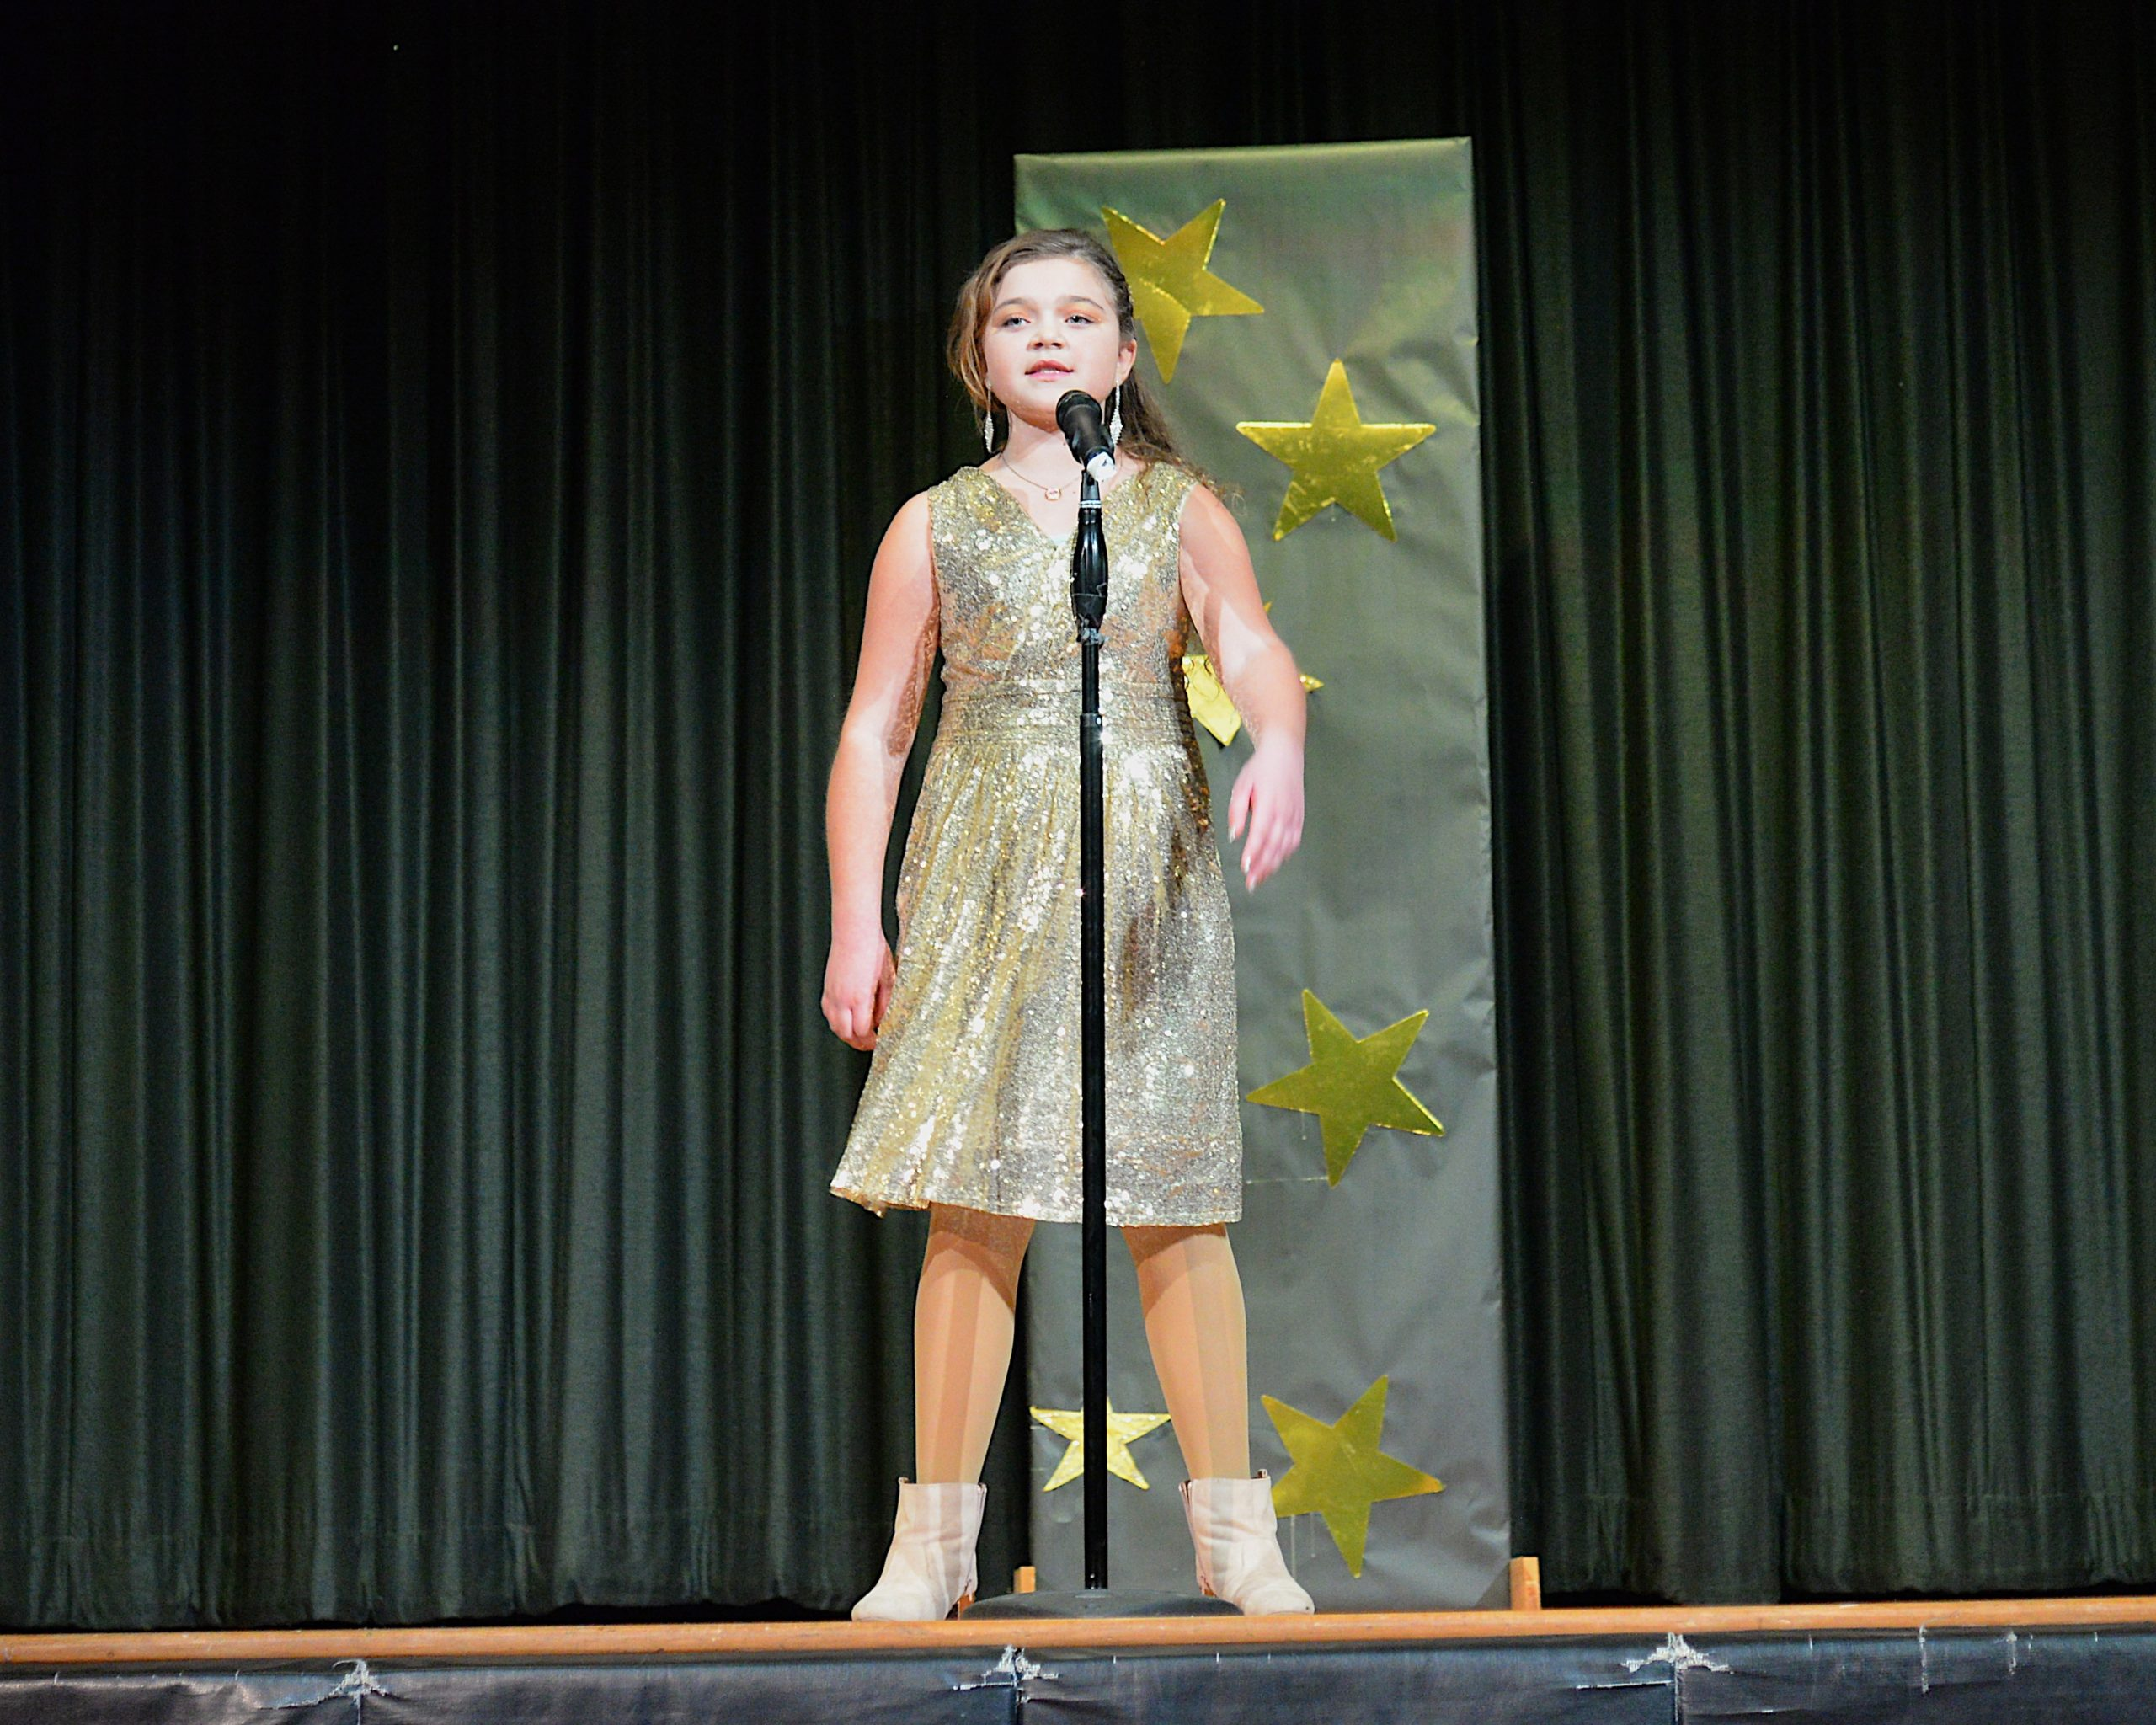 The Montauk School students were invited to participate in a Variety Show on Friday evening.  Jolee White was among the participants. KYRIL BROMLEY